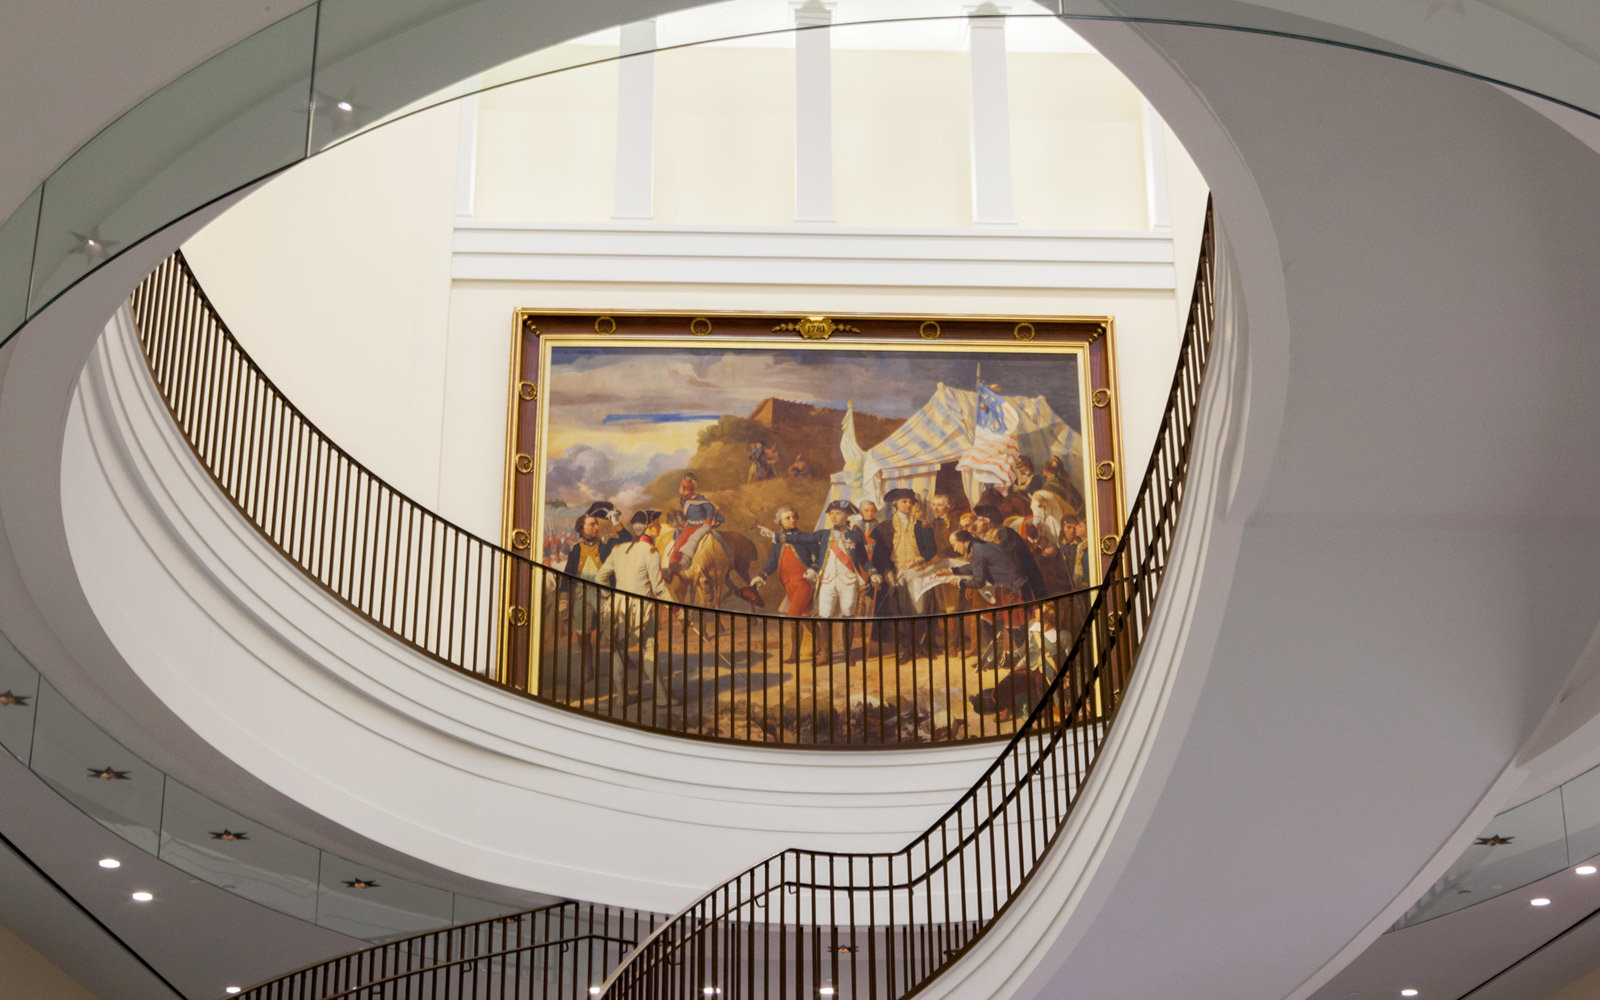 Interior Stairwell, Museum of the American Revolution, Philadelphia, Pennsylvania